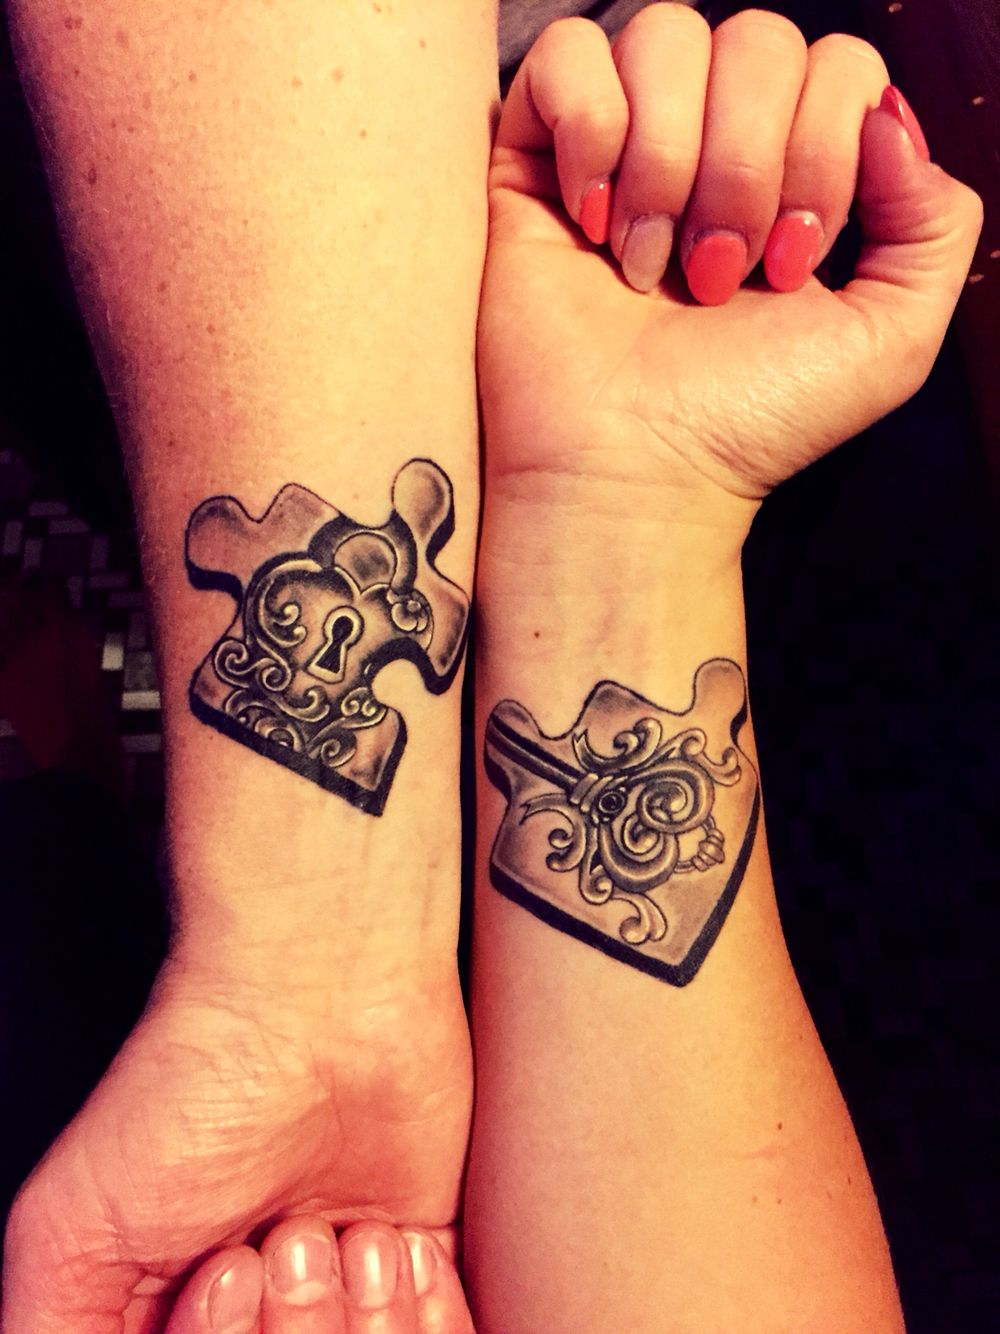 30 matching tattoo ideas for couples | daughter tattoos, tattoo